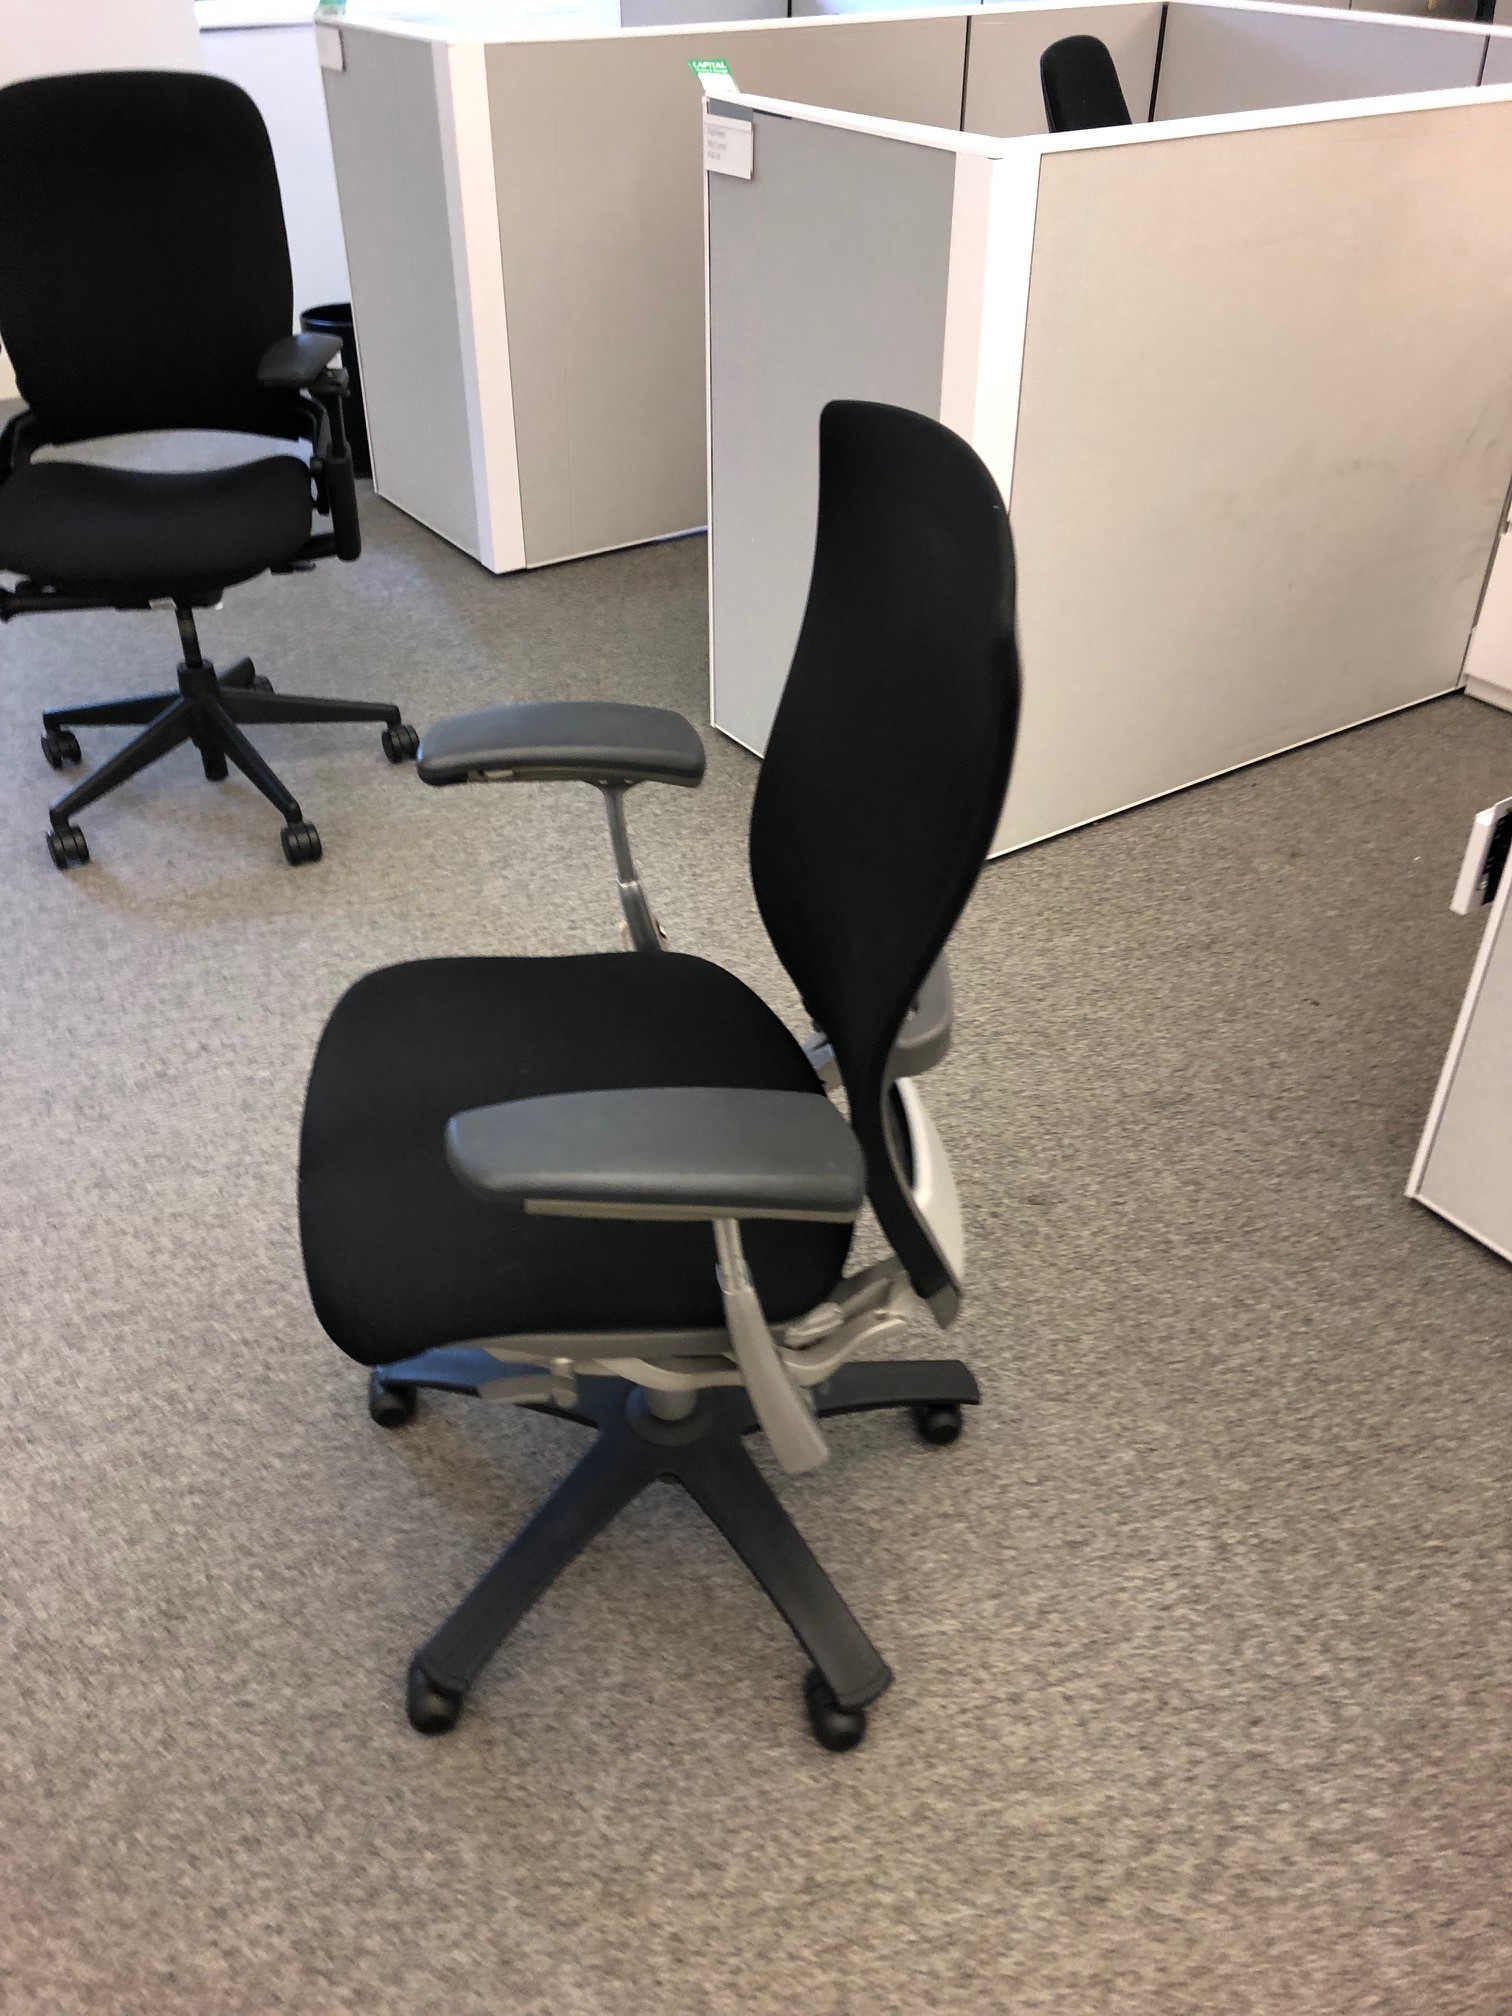 Knoll Life Chairs C61370c Conklin Office Furniture